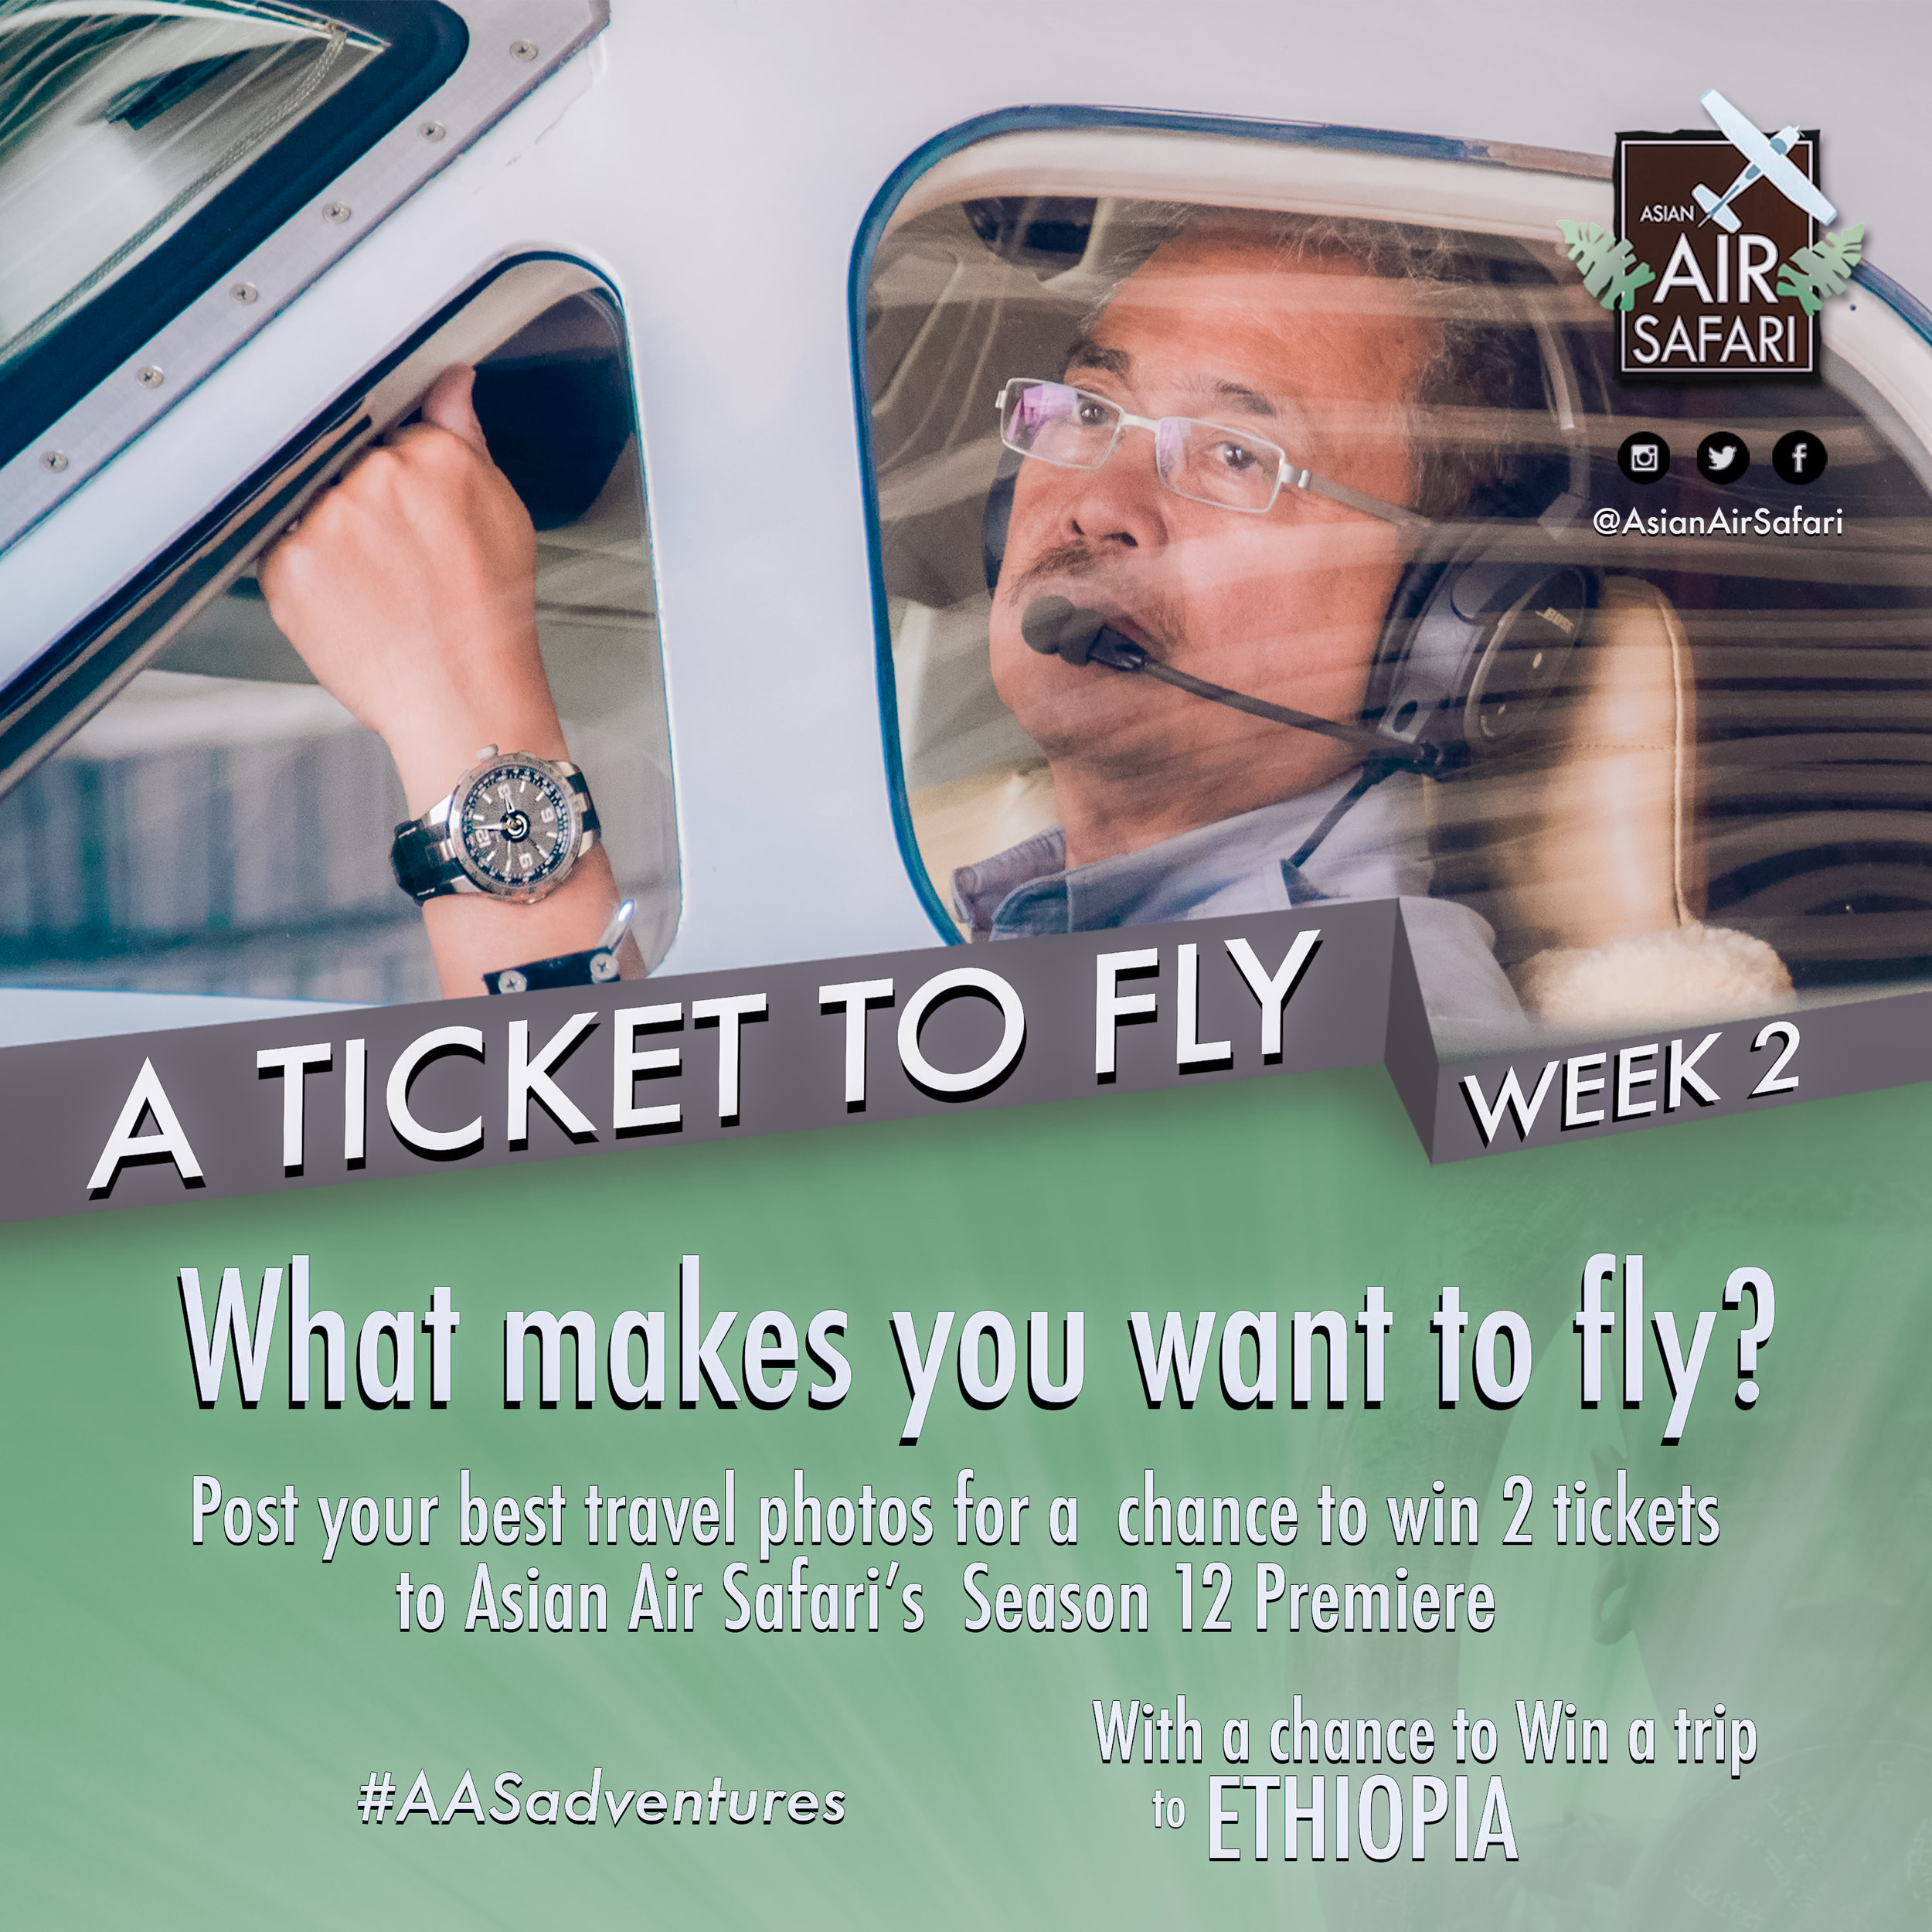 A Ticket to Fly: Join Asian Air Safari's photo contest for a chance to fly to Ethiopia! - Asian Air Safari, a flying-adventure travel show that airs weekly on the ABS-CBN News Channel, is launching its 12th season with an exclusive cinema premiere on May 23, 2017.